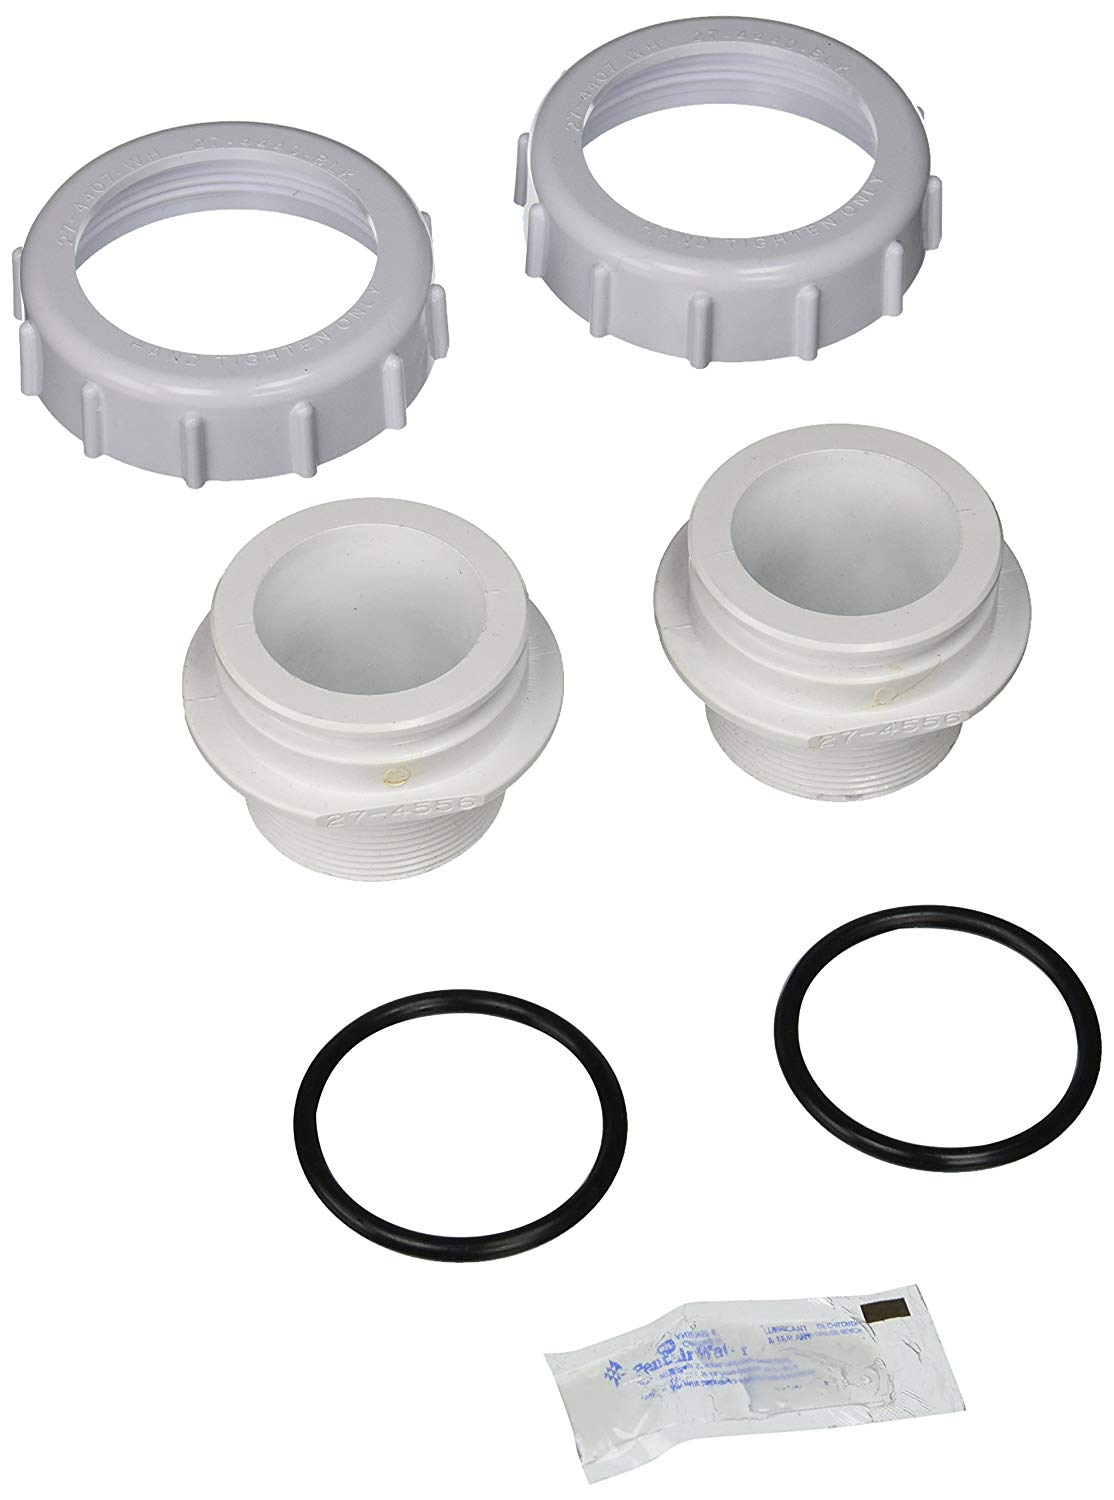 Pentair 271092 Threaded Adapter Replacement Kit Triton Pool and Spa Sand Filter